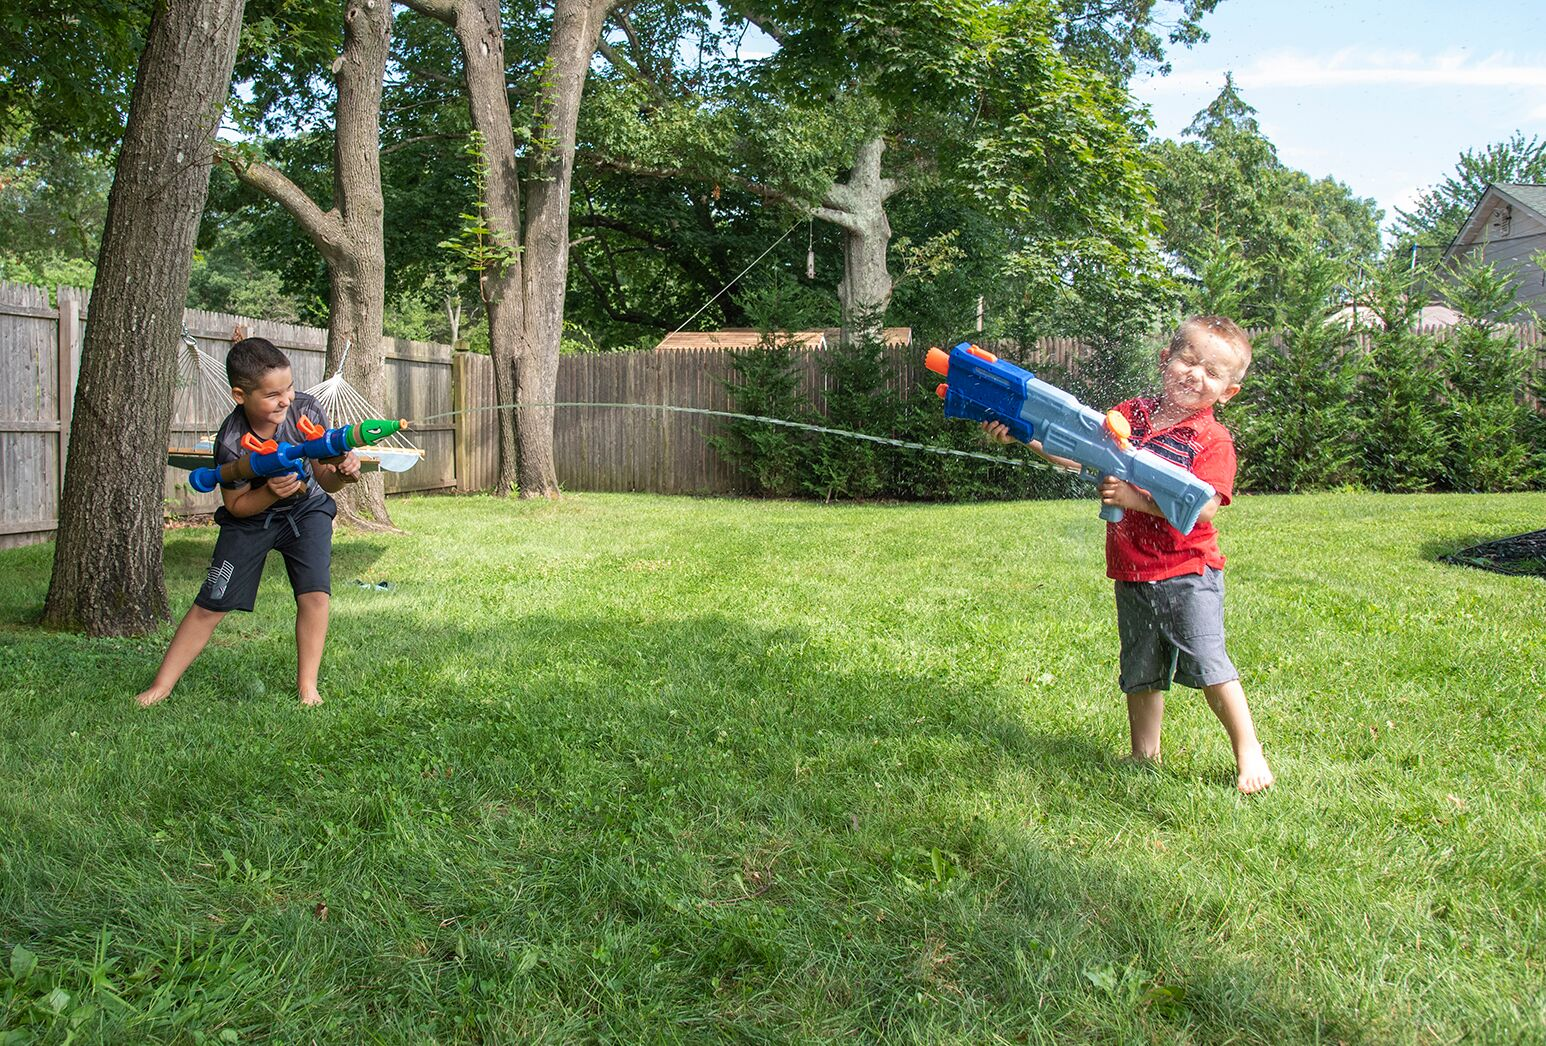 Dark haired boy and blonde haired boy playing with water guns outside.